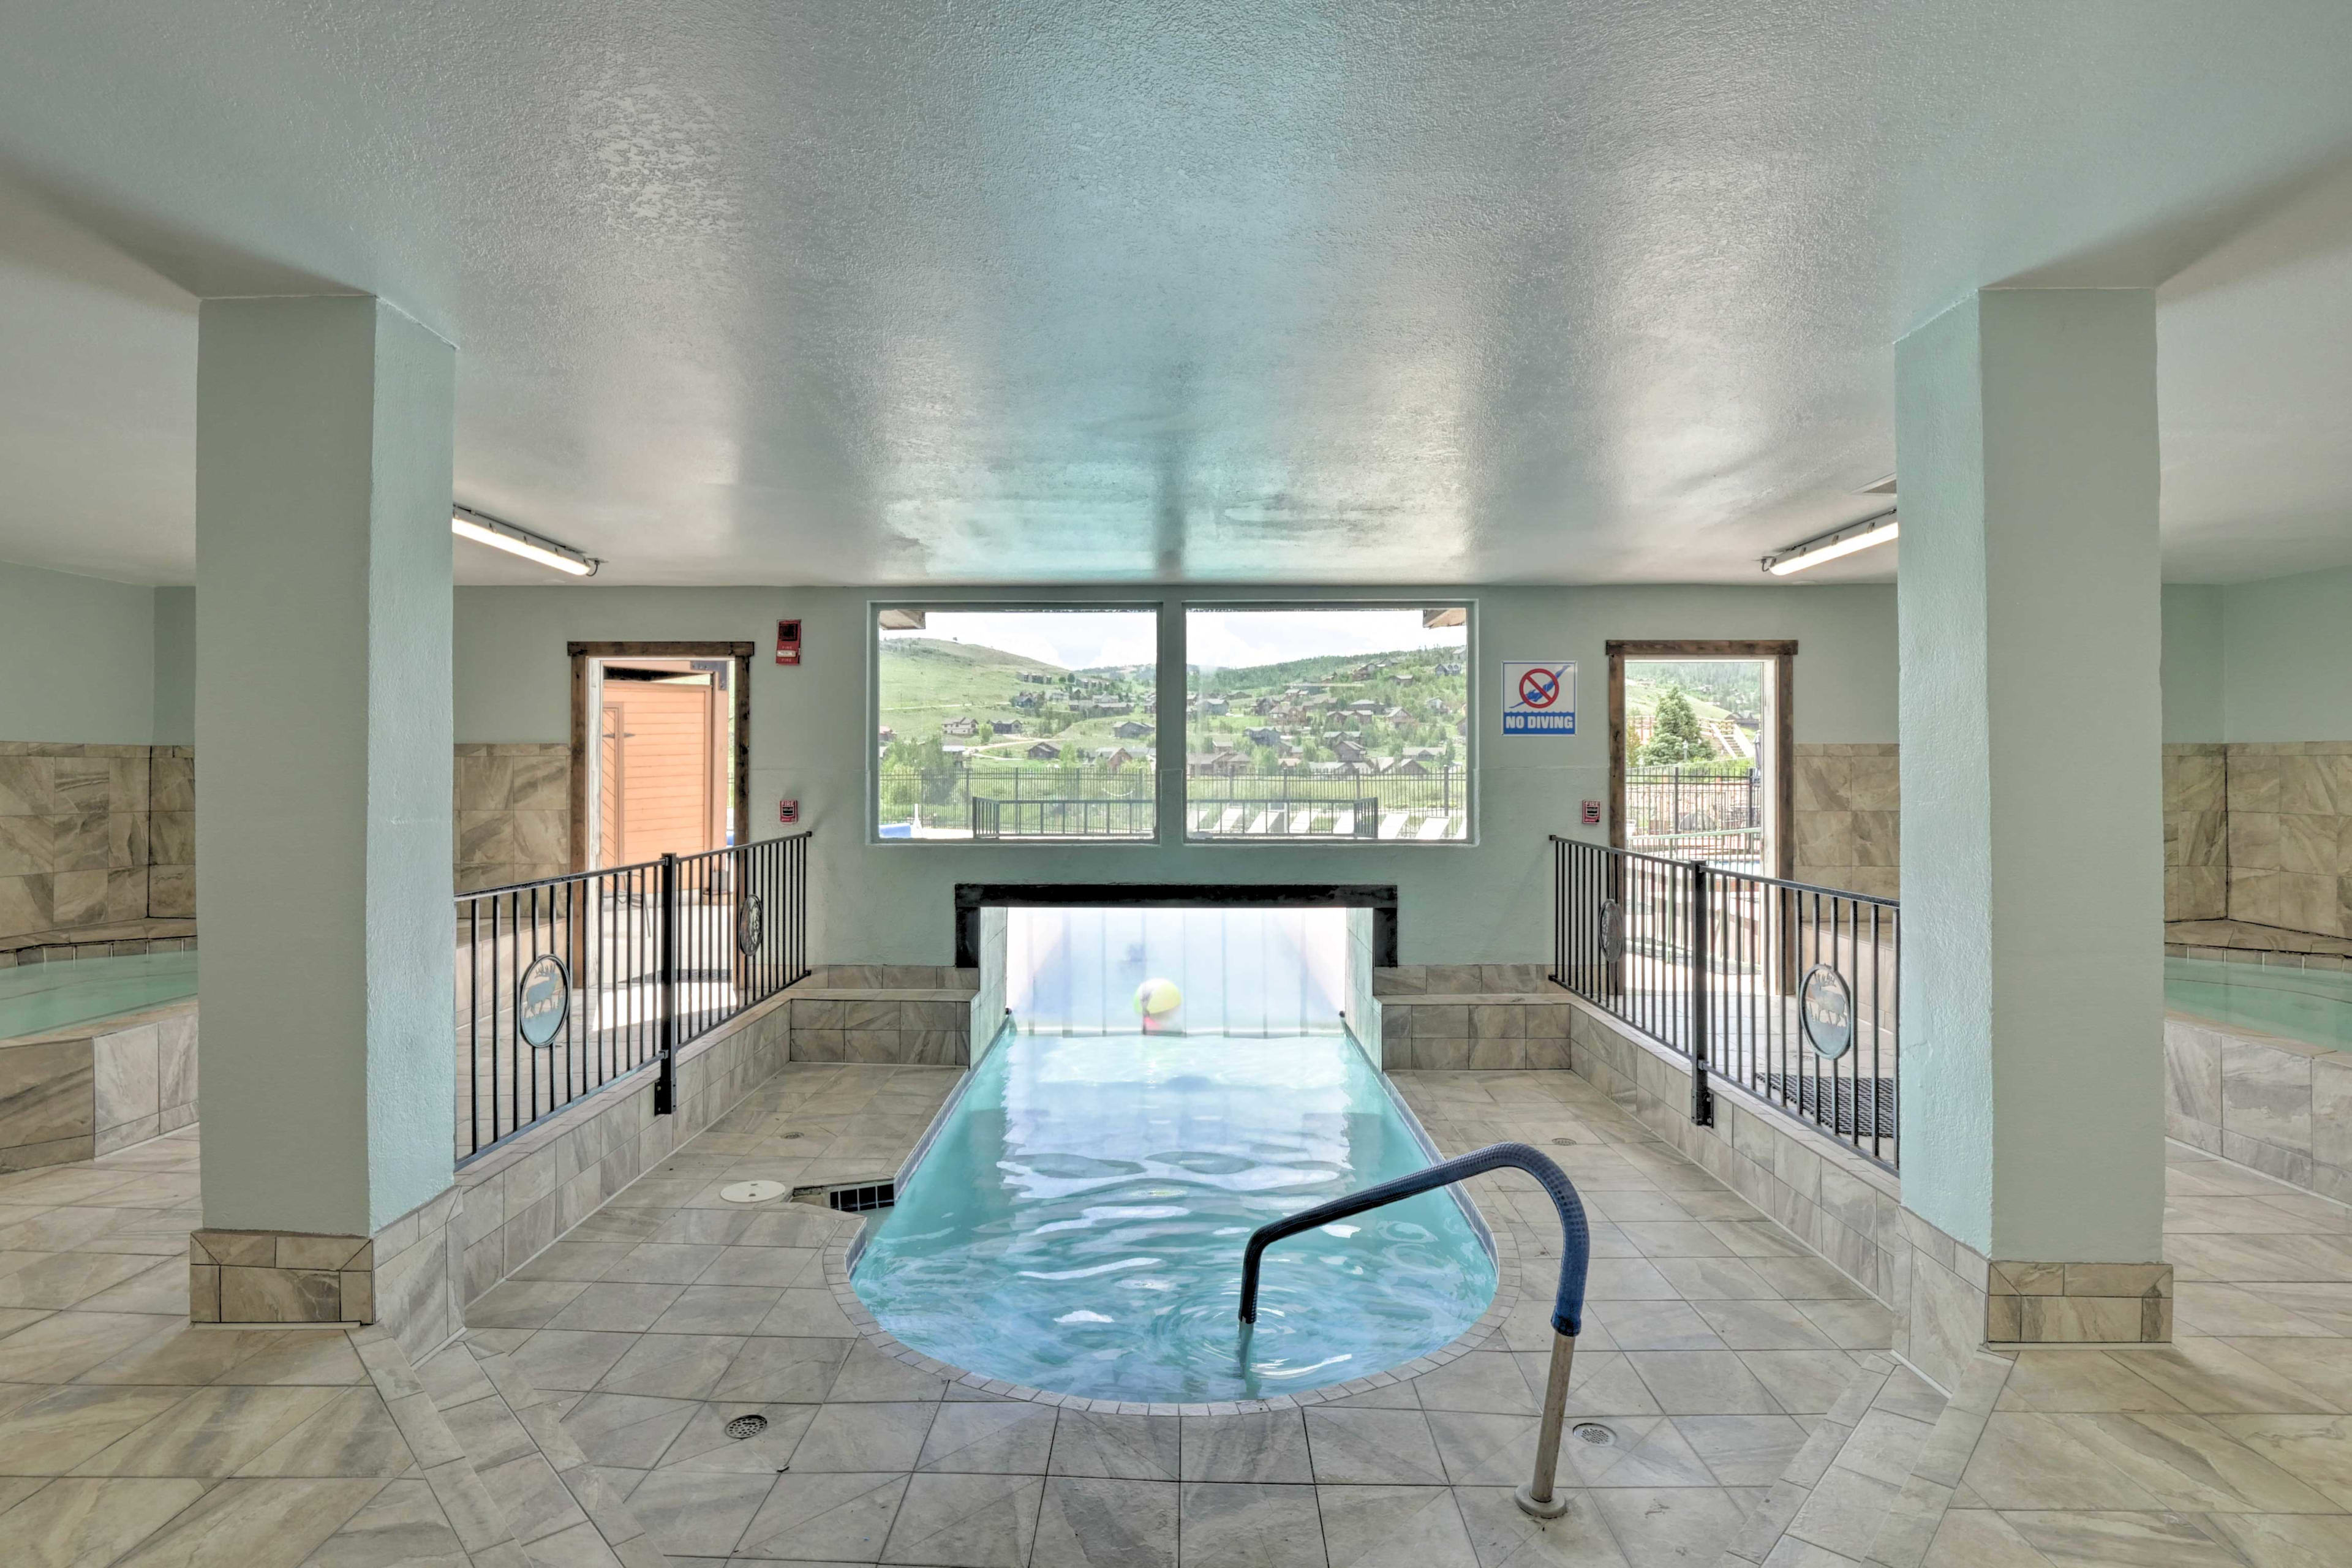 Find access to the indoor/outdoor pool at this condo.